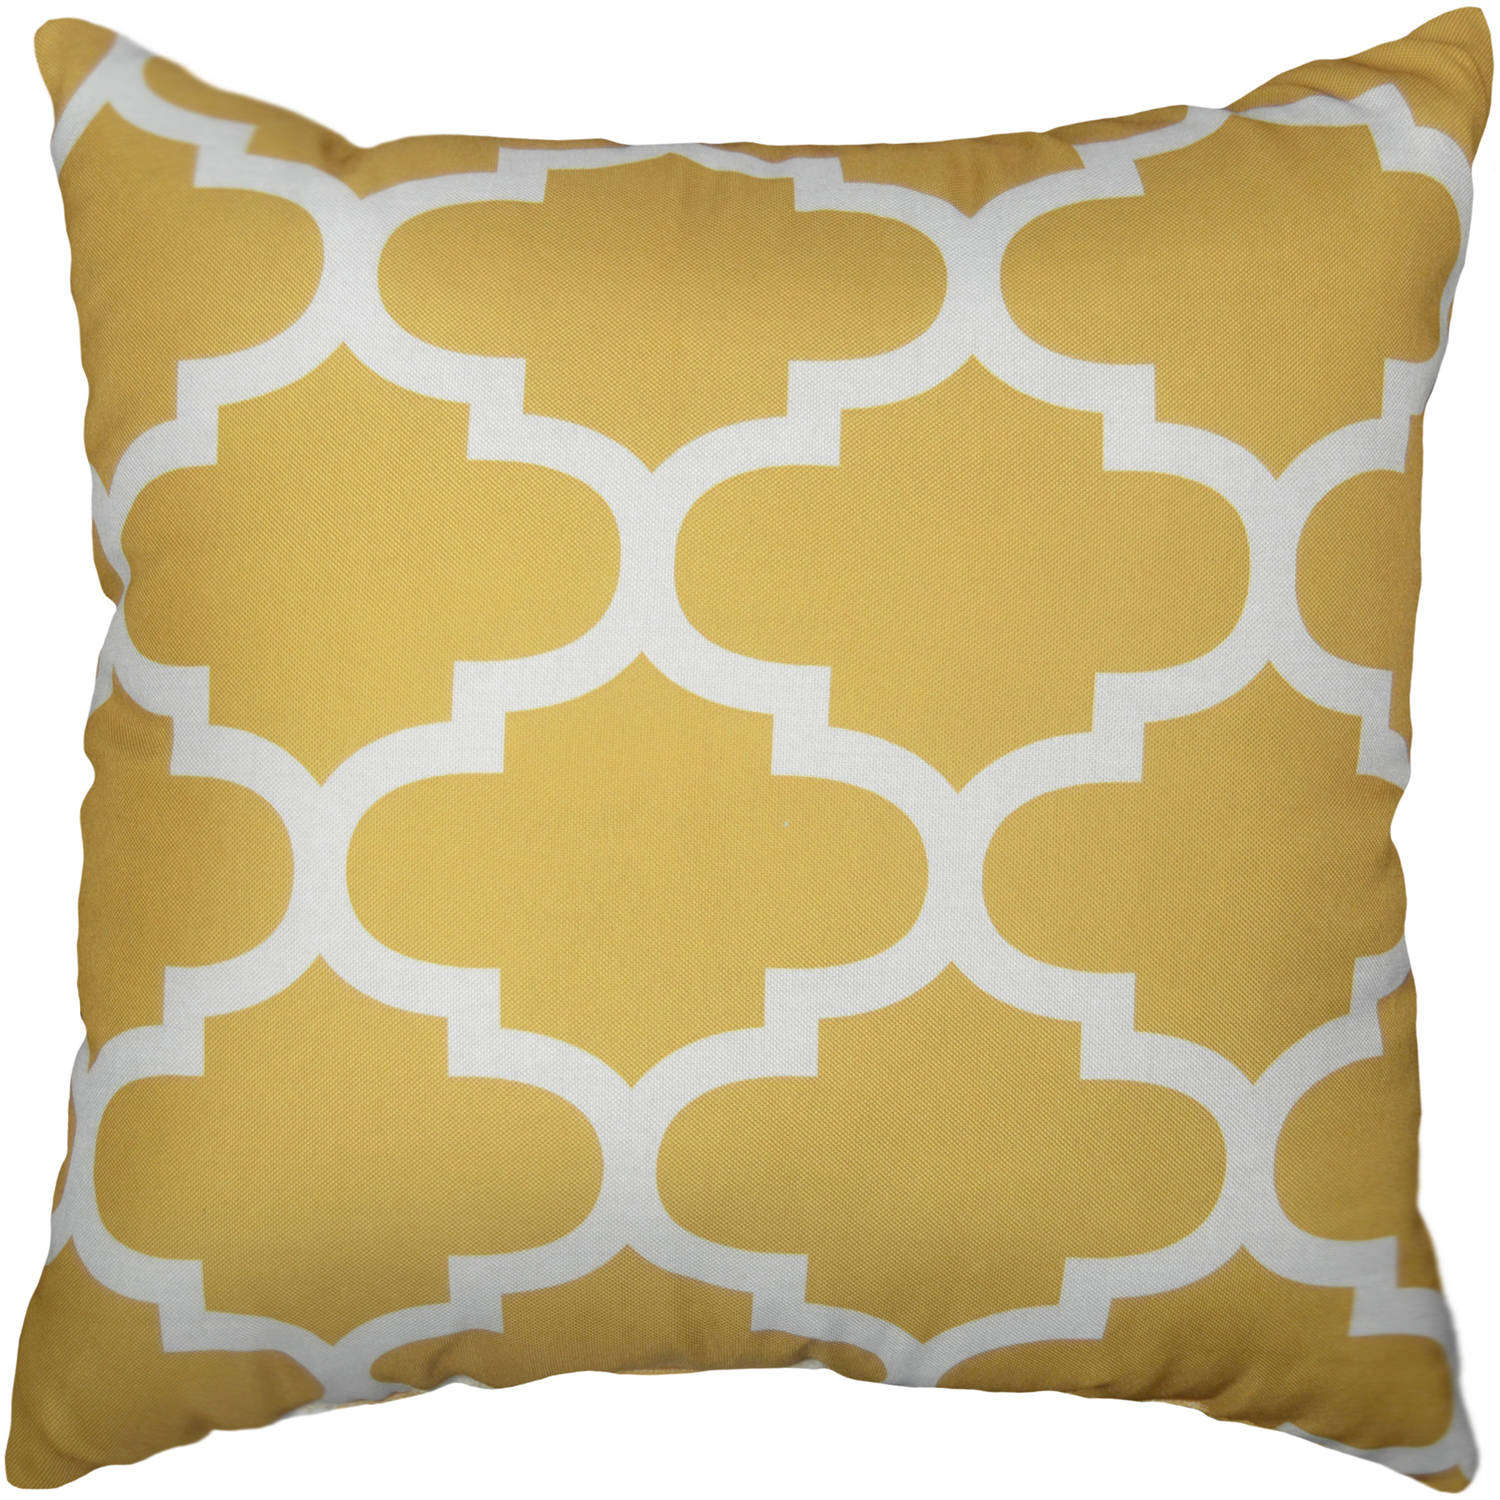 yellow color and white pattern sofa pillows